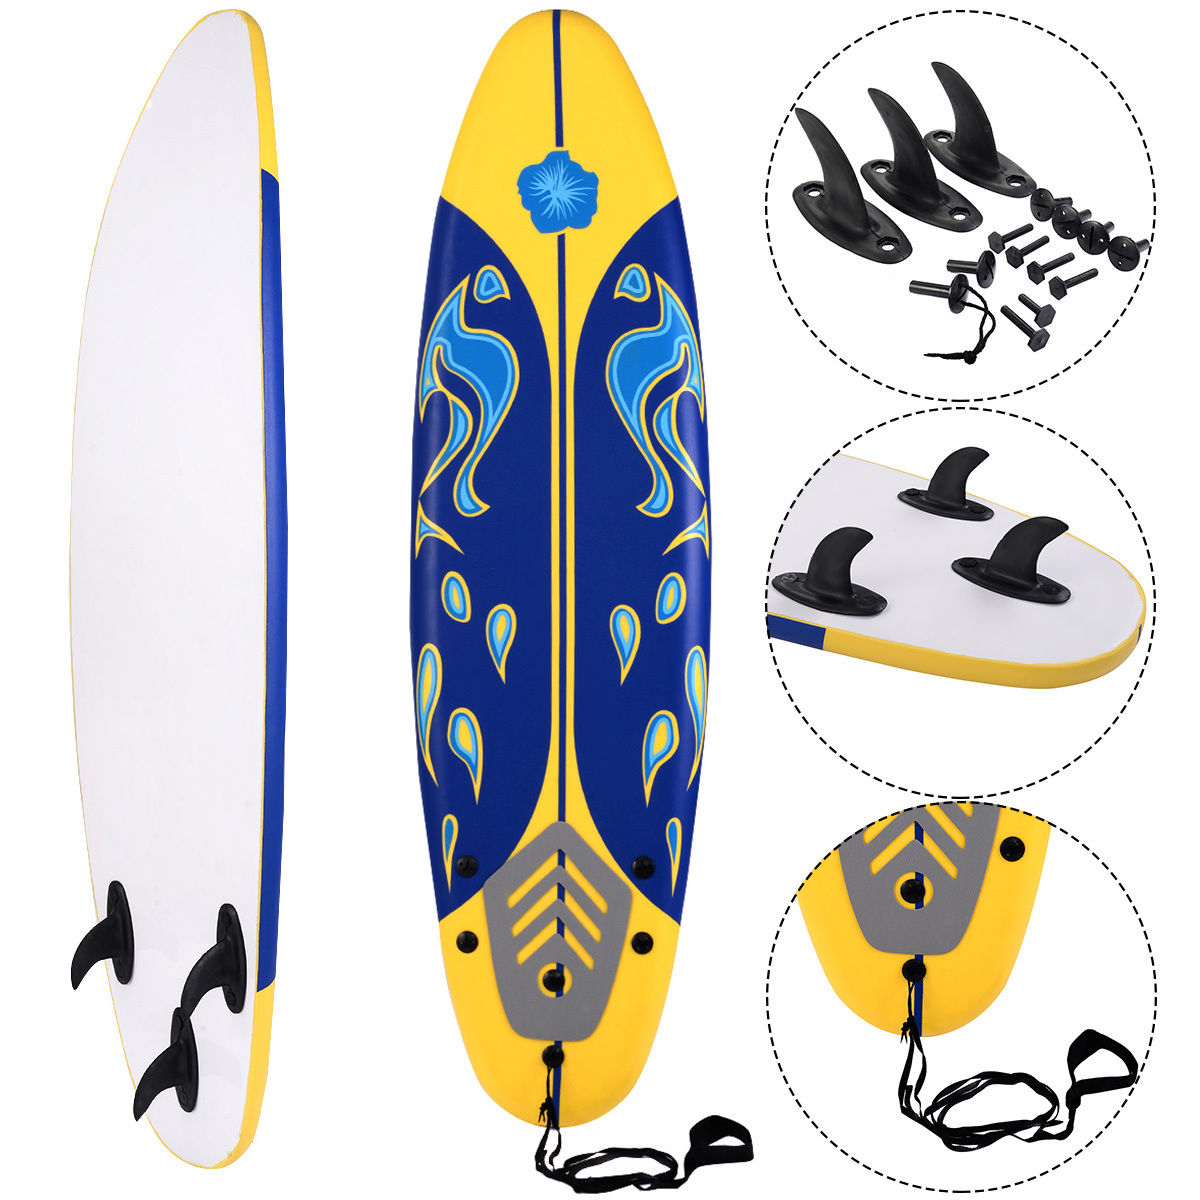 Click here to buy Goplus 6' Surfboard Surf Foamie Boards Surfing Beach Ocean Body Boarding Yellow by Goplus.